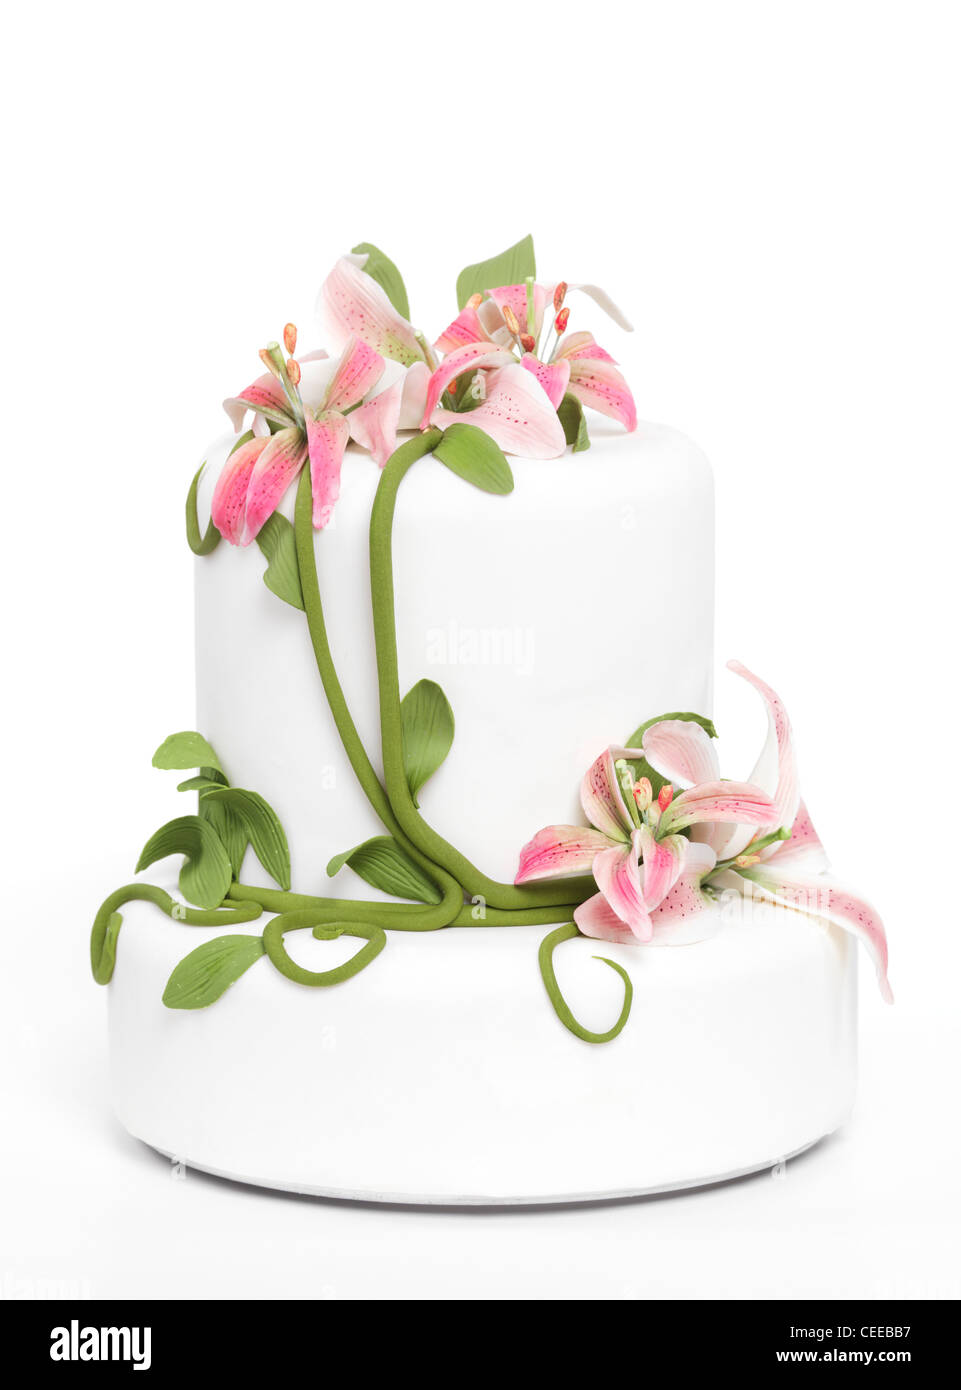 Fancy cake with lilies isolated on white background - Stock Image